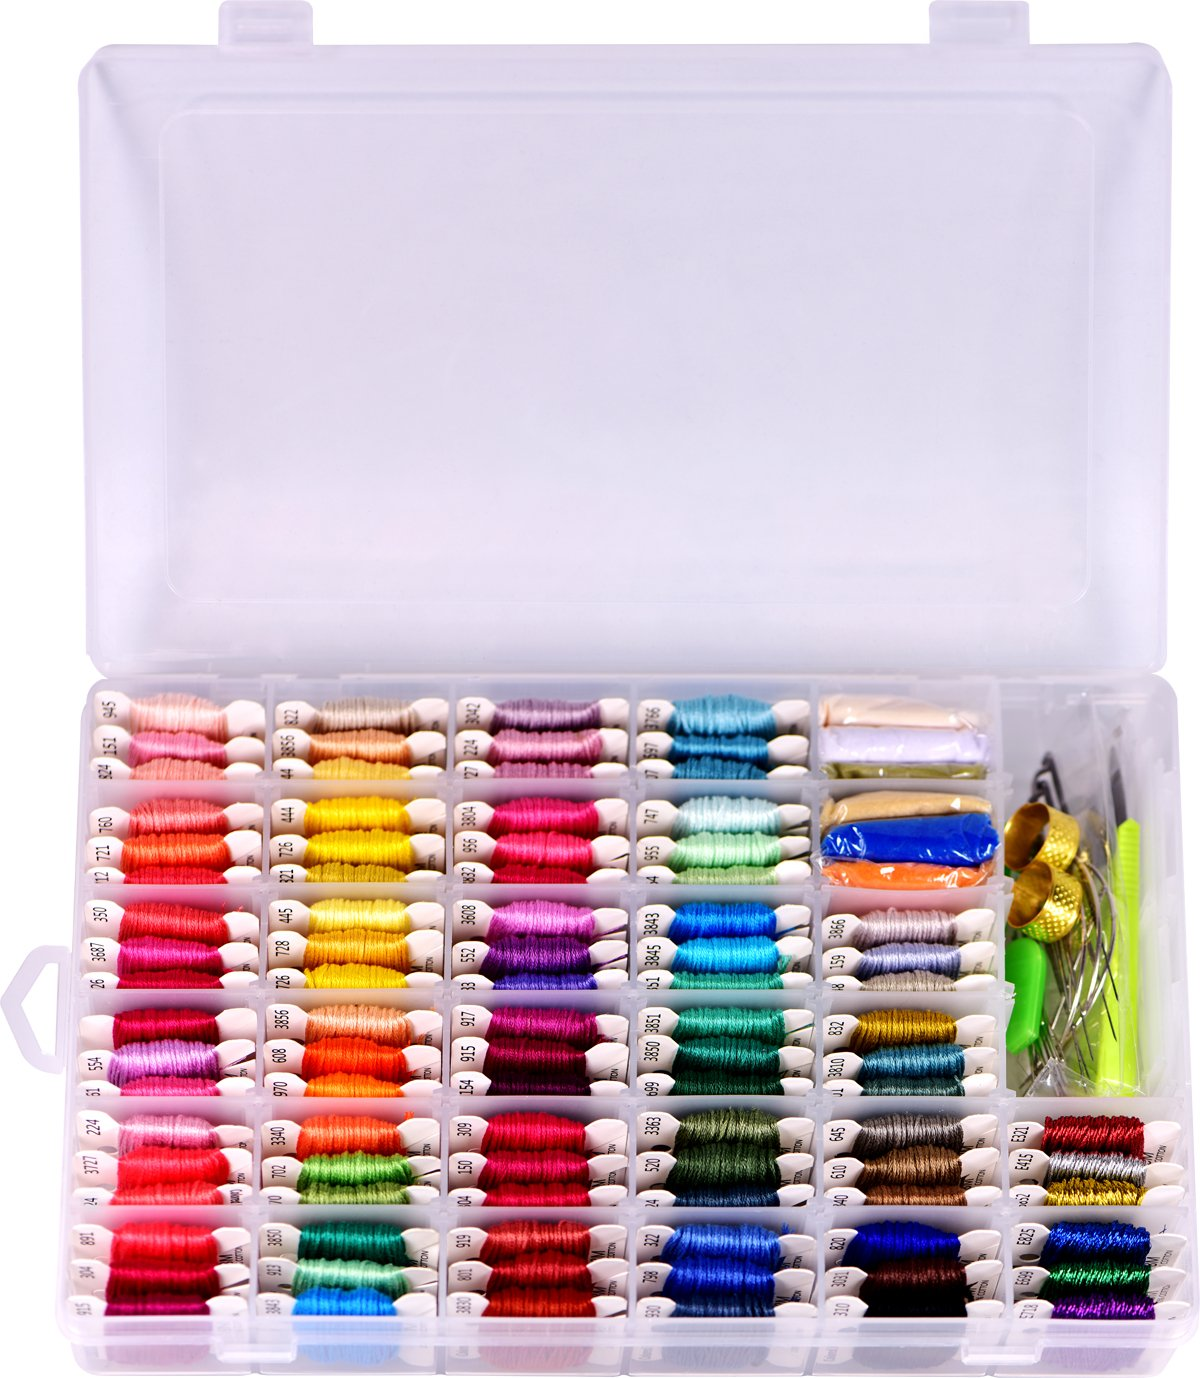 Embroidery Floss & Bracelet String Kits with Organizer Storage Box-Cross Stitch Threads Set-Friendship Bracelets Floss-Crafts Floss-84 Cotton Floss 6 Metallic Thread,Colorful Wool Roving,Tool Kits by COLORED BIRD